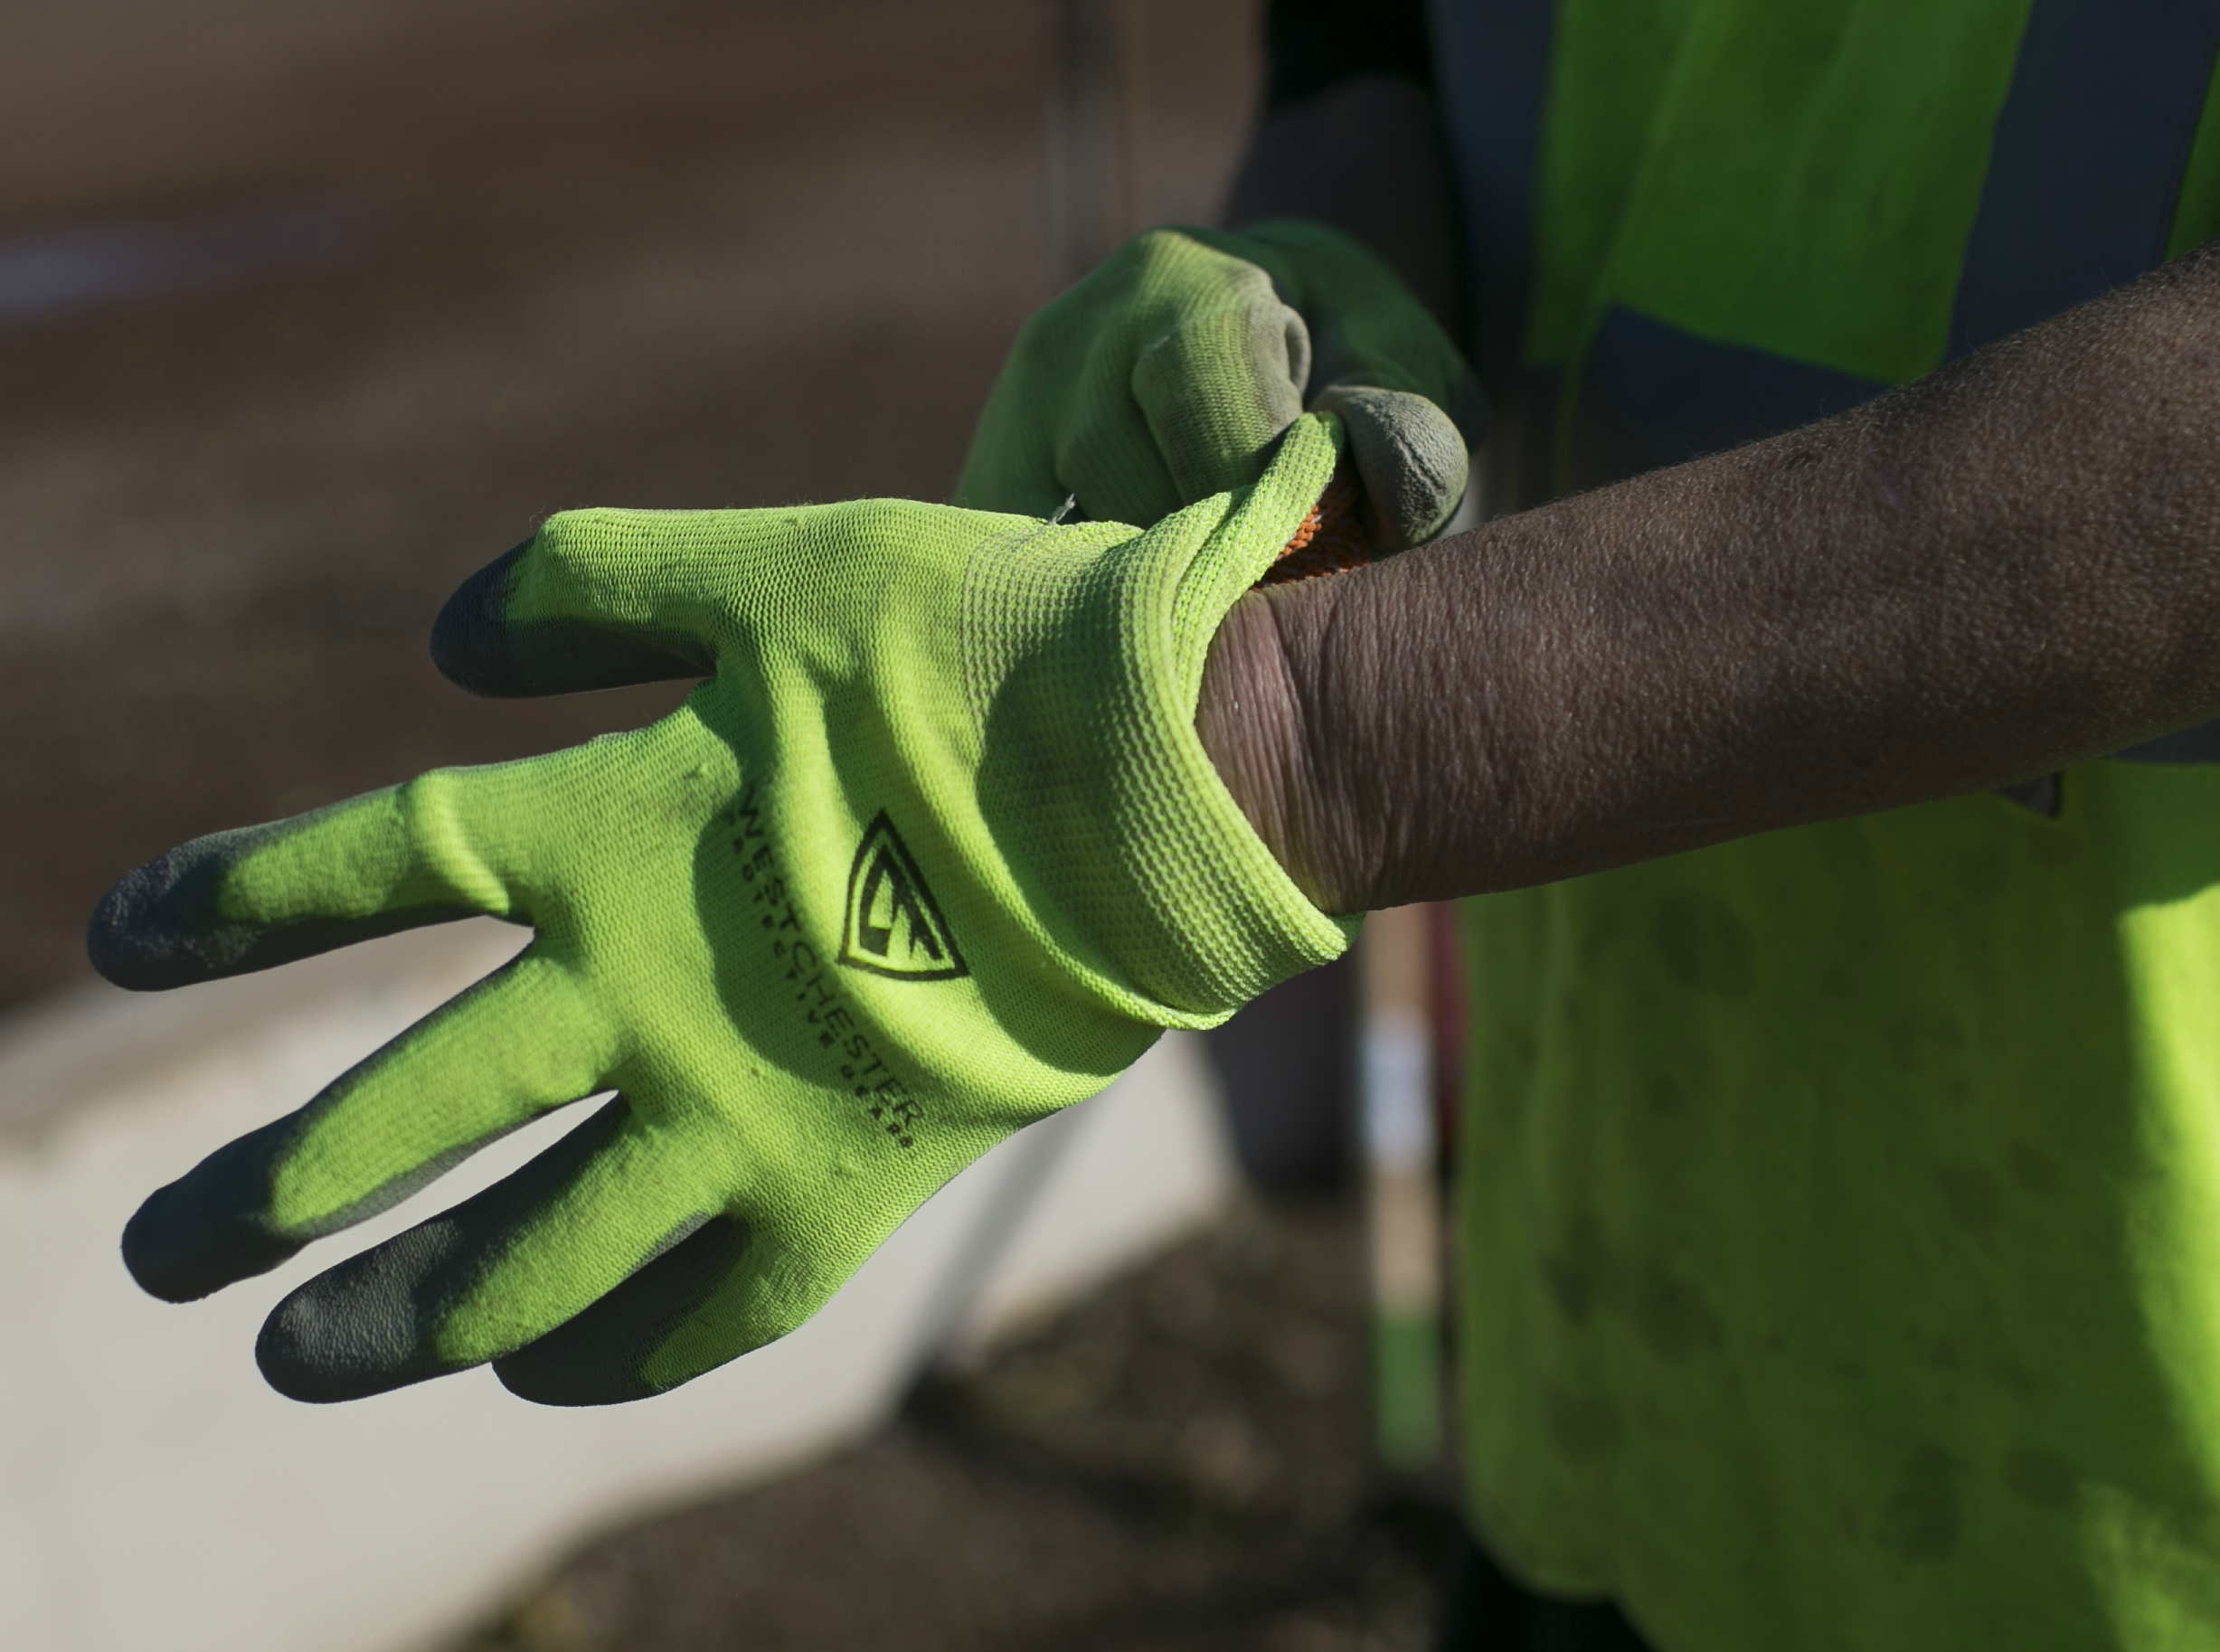 Sherry Millegan pulls on gloves to help clean Grand Canal Linear Park as part of the Phoenix Rescue Mission's Glendale Works program on Jan. 7, 2019 in Glendale, Arizona.